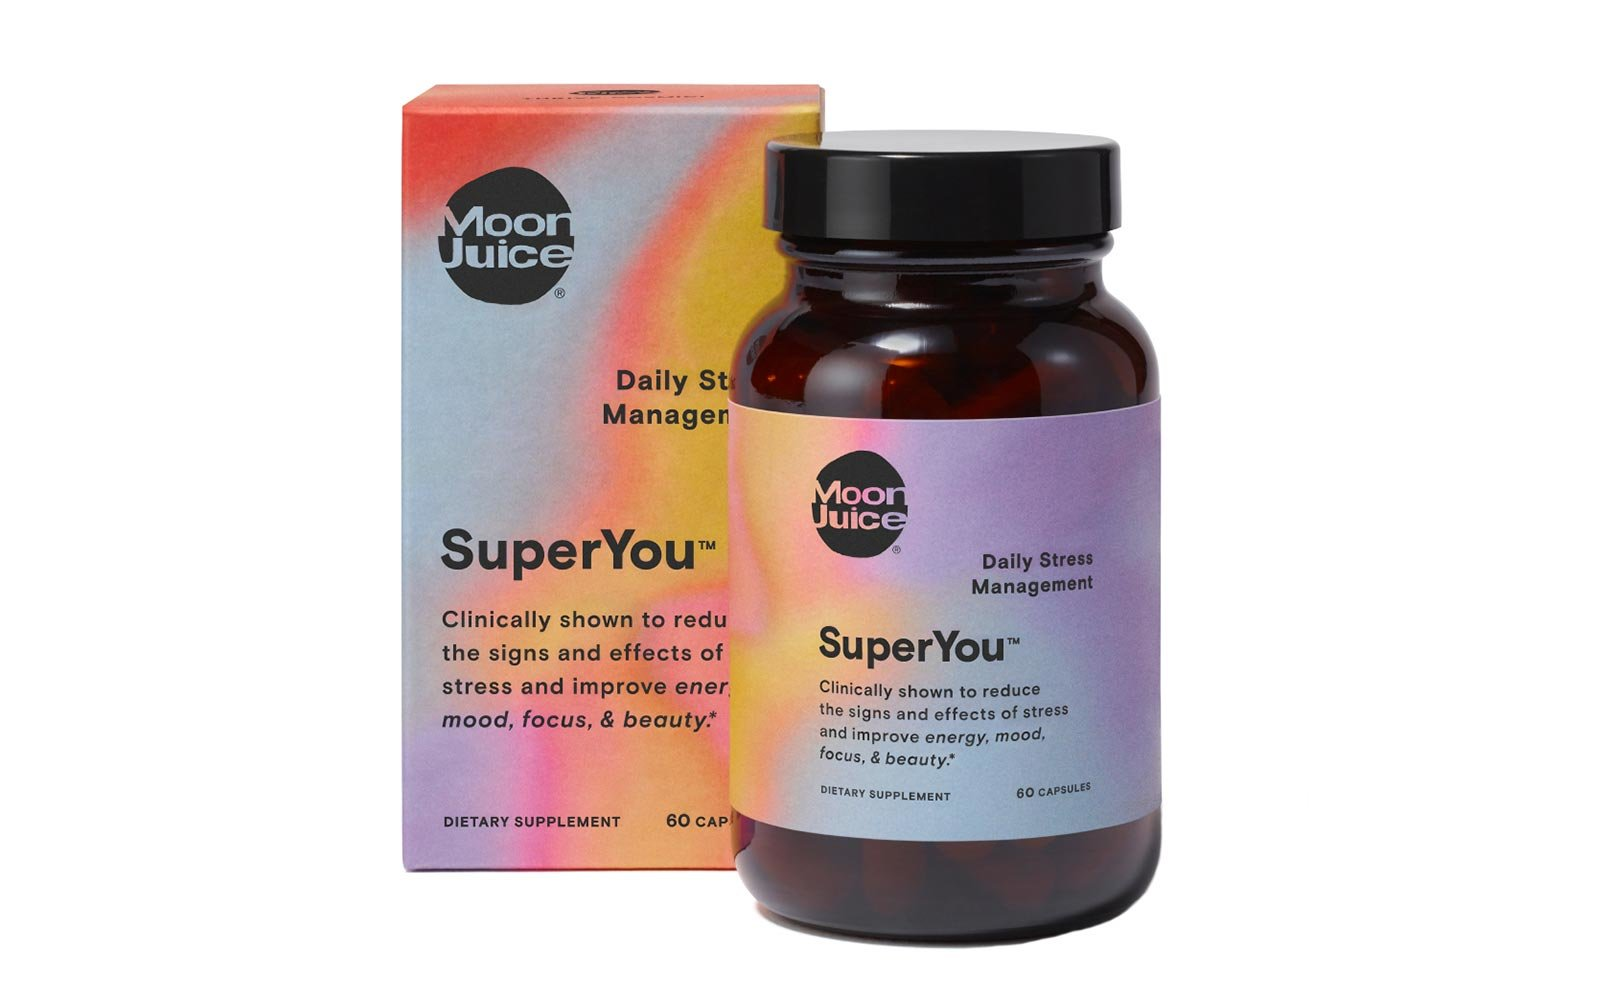 Moon Juice SuperYou Daily Stress Management